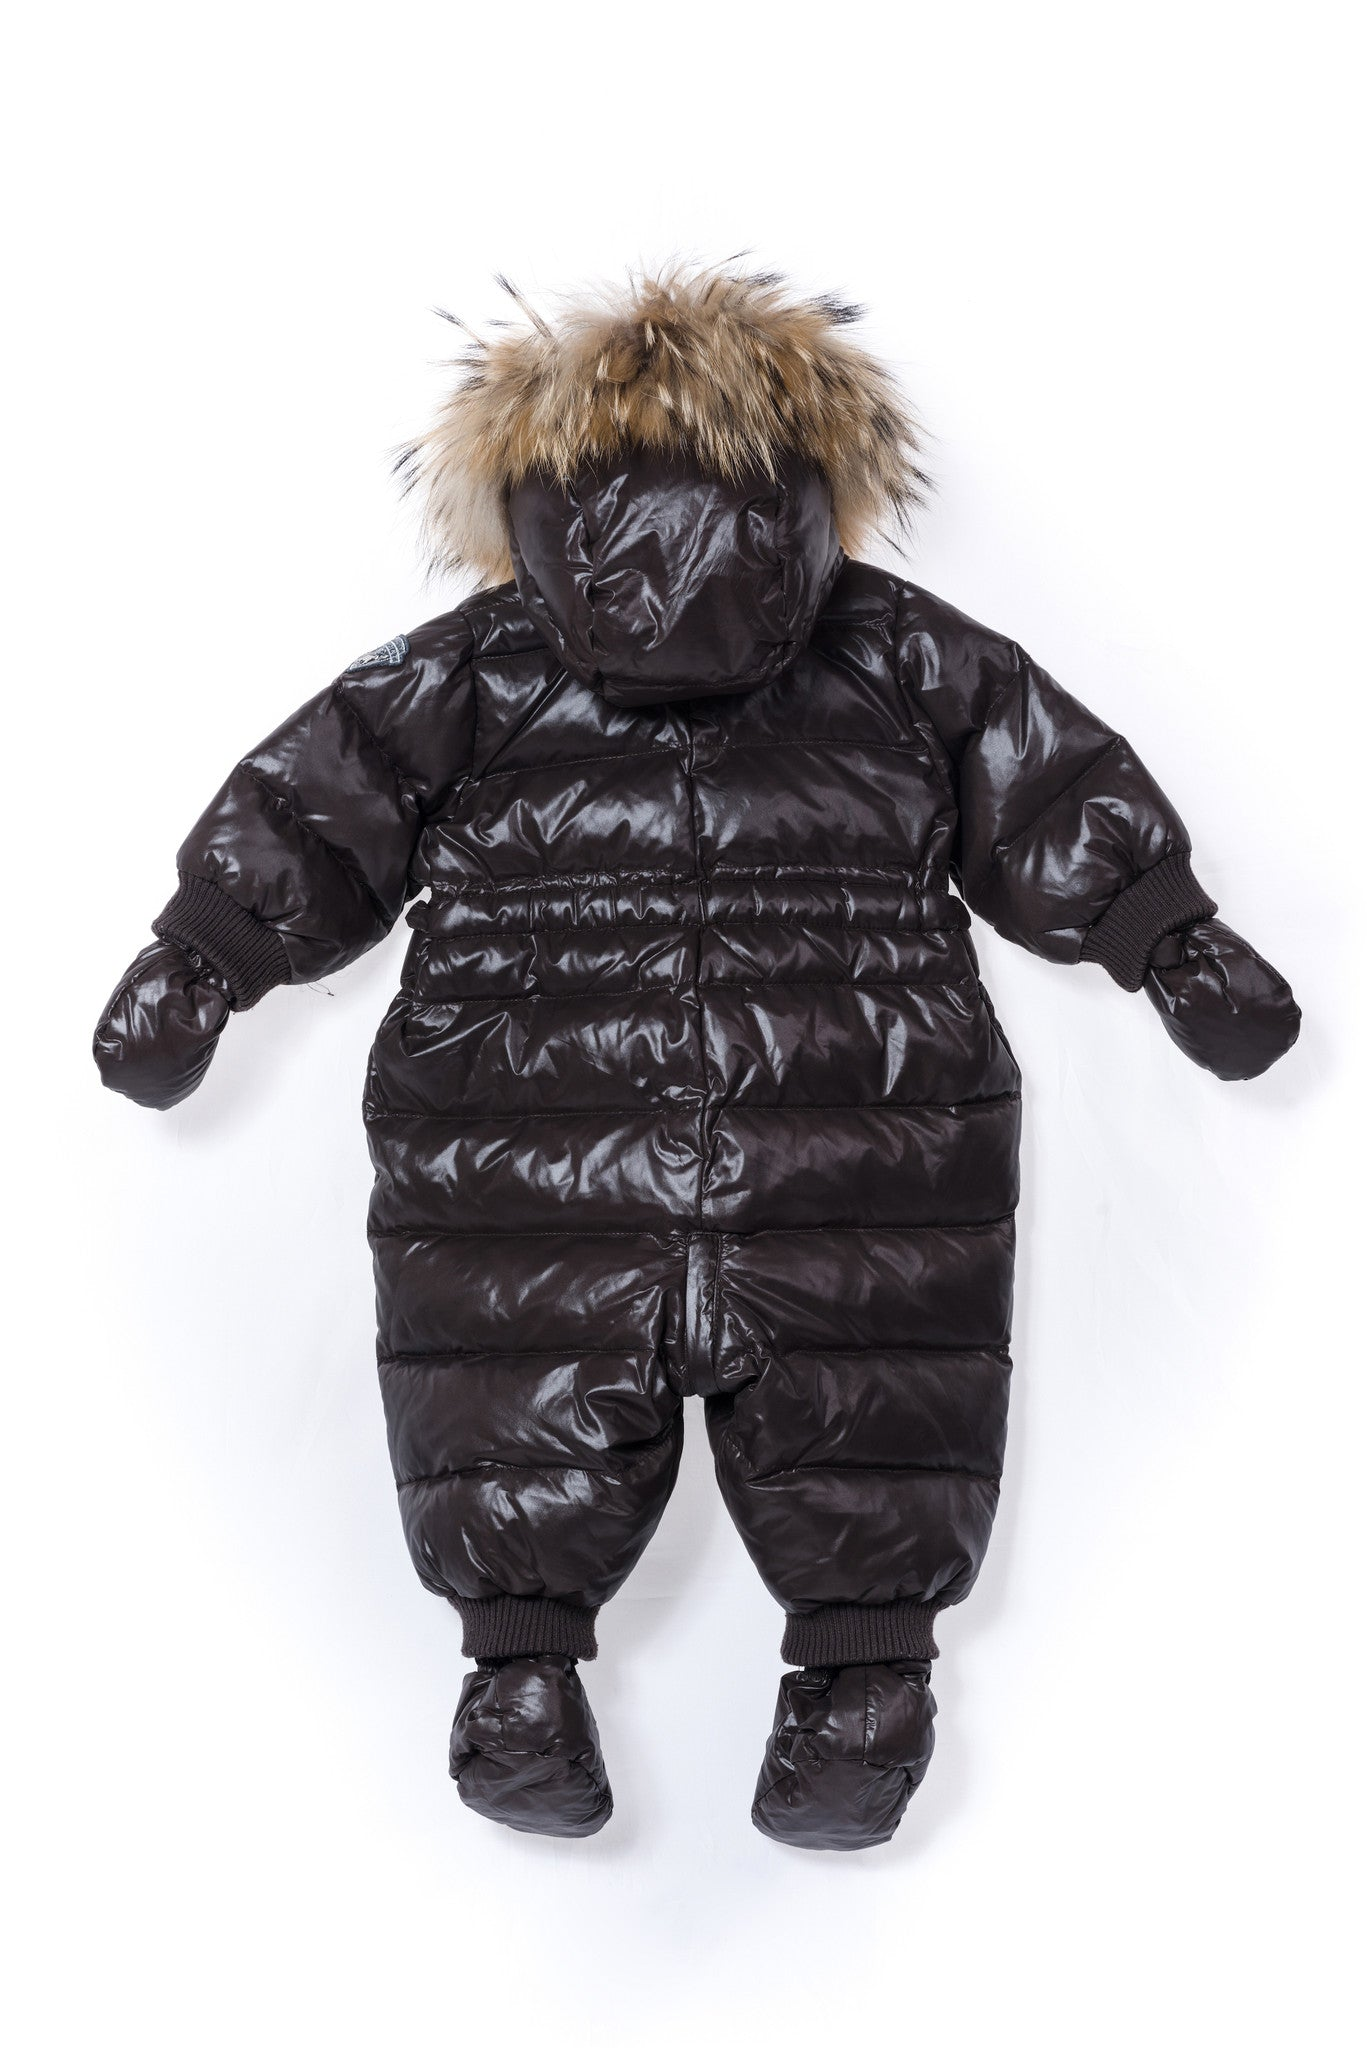 Snowsuit 0-3M, Bonpoint at Retykle - Online Baby & Kids Clothing Up to 90% Off